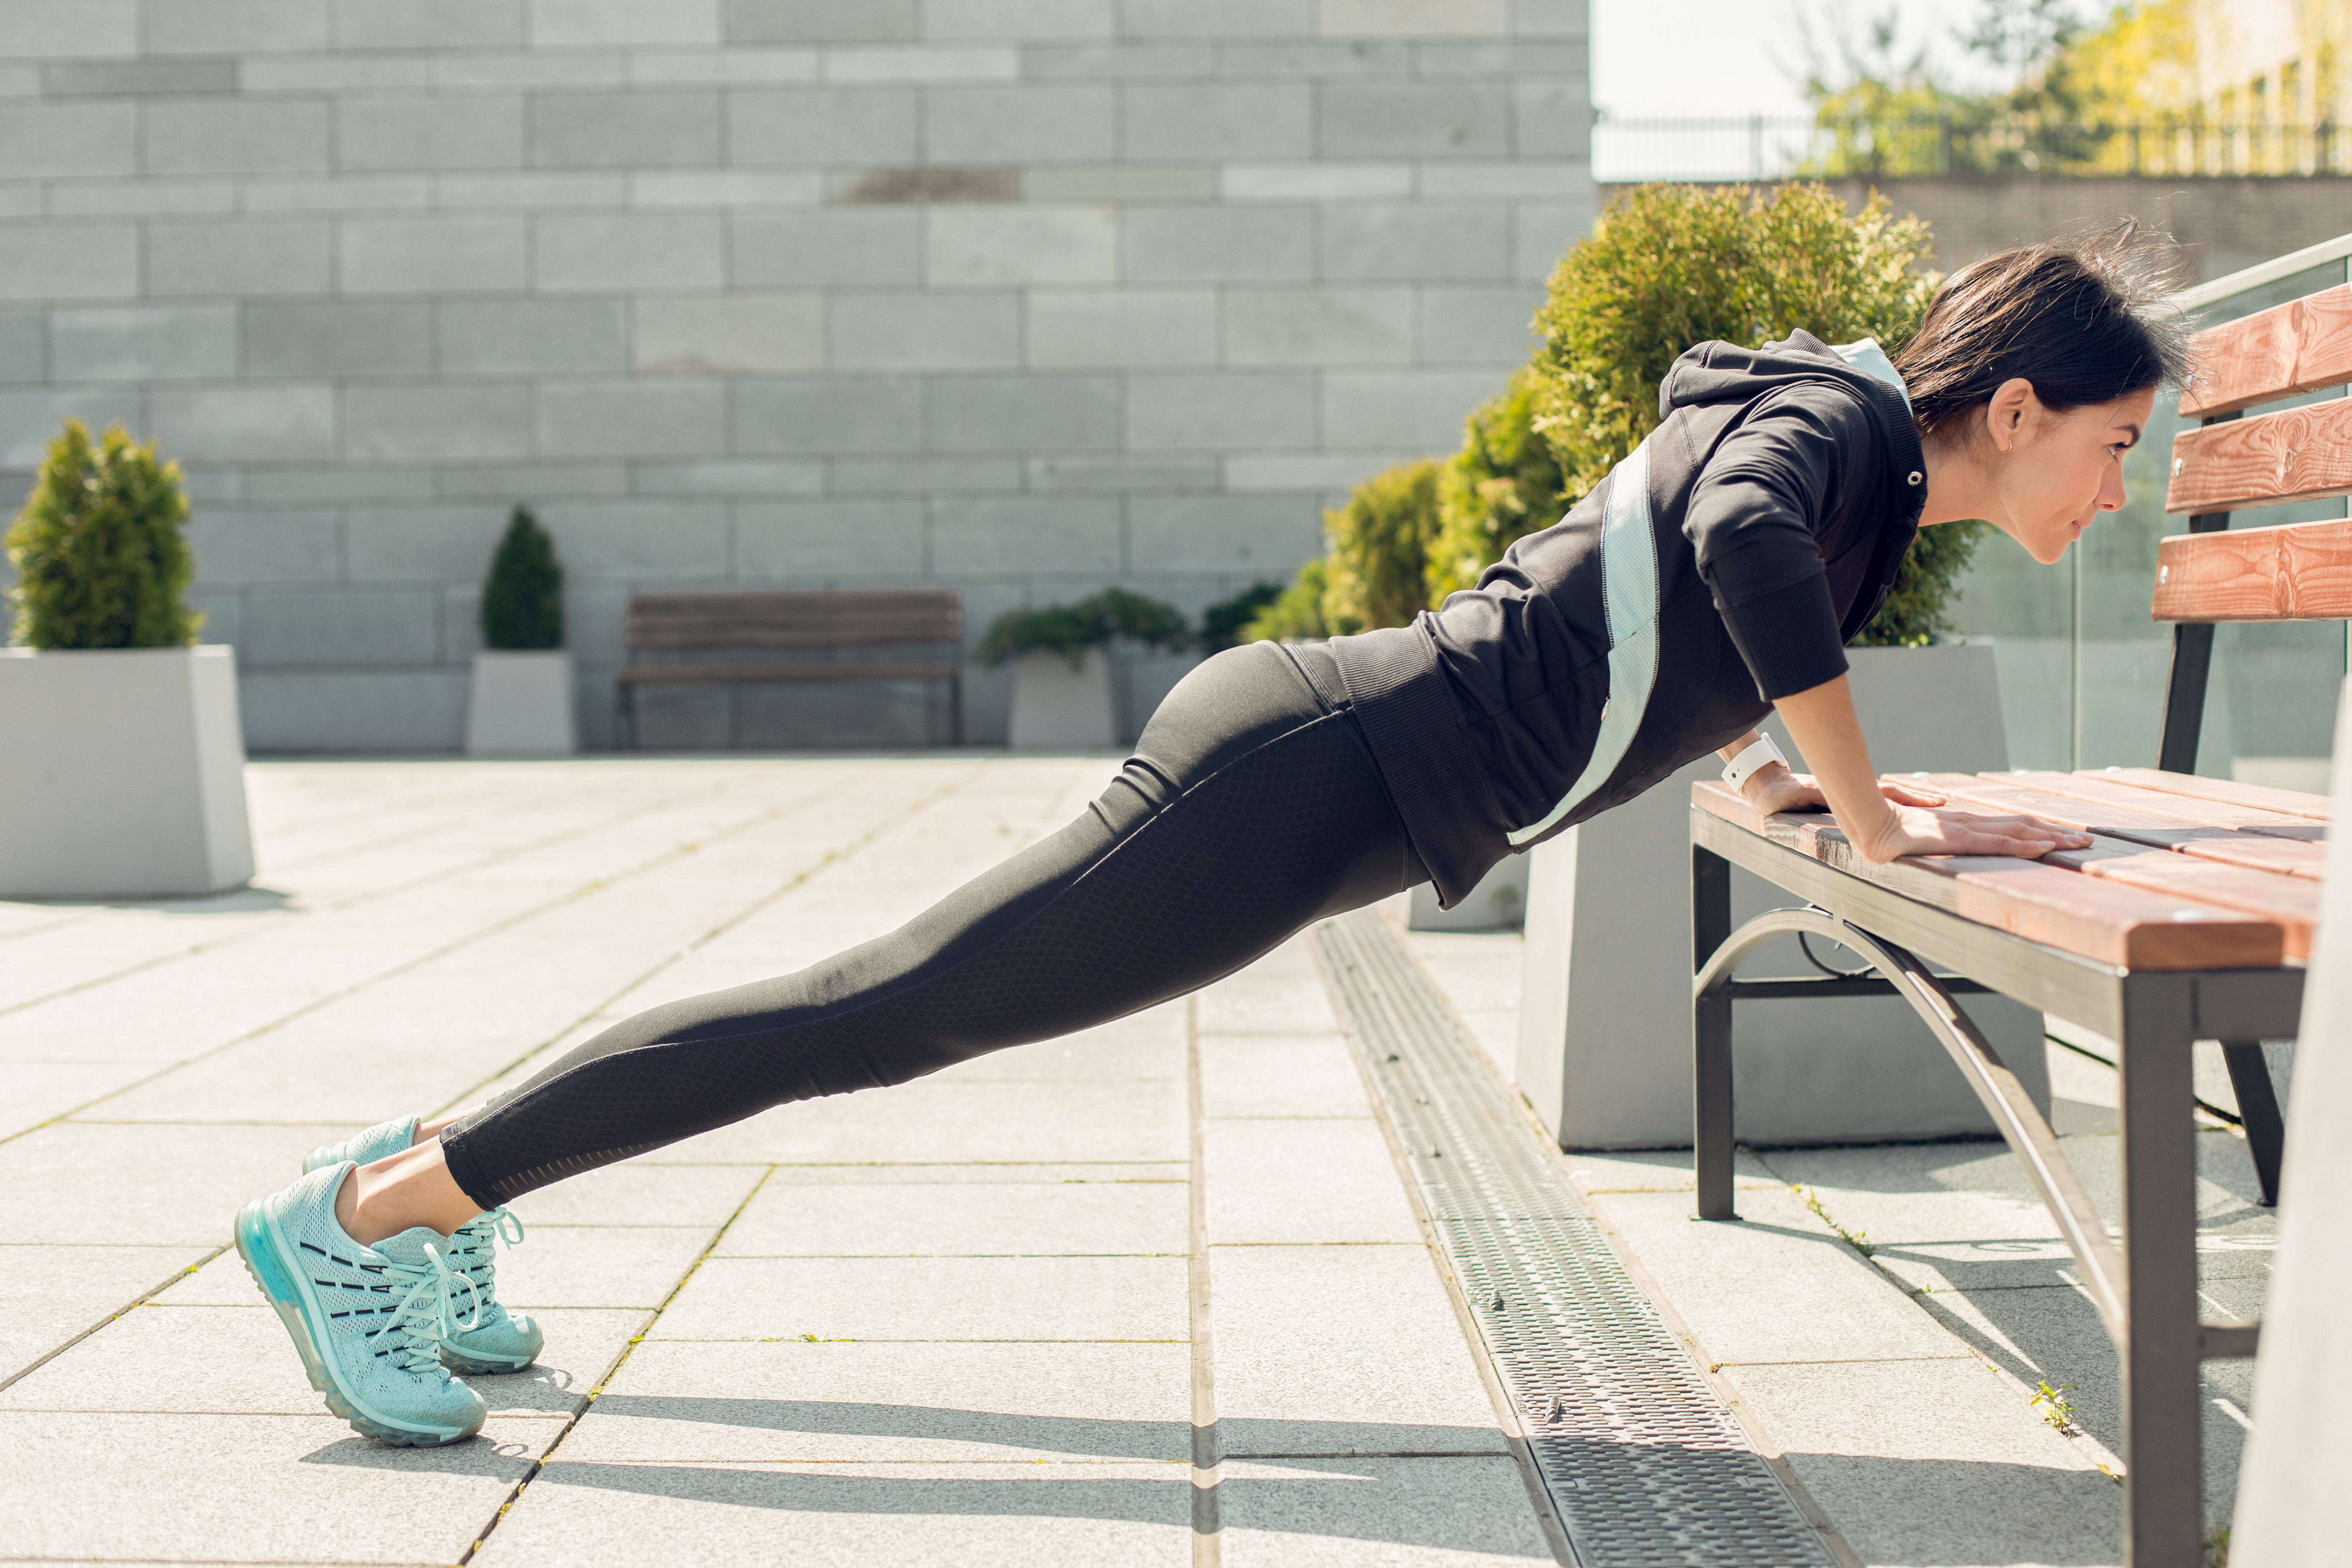 How Many Push-Ups Should a Female Do to Get Toned Arms?